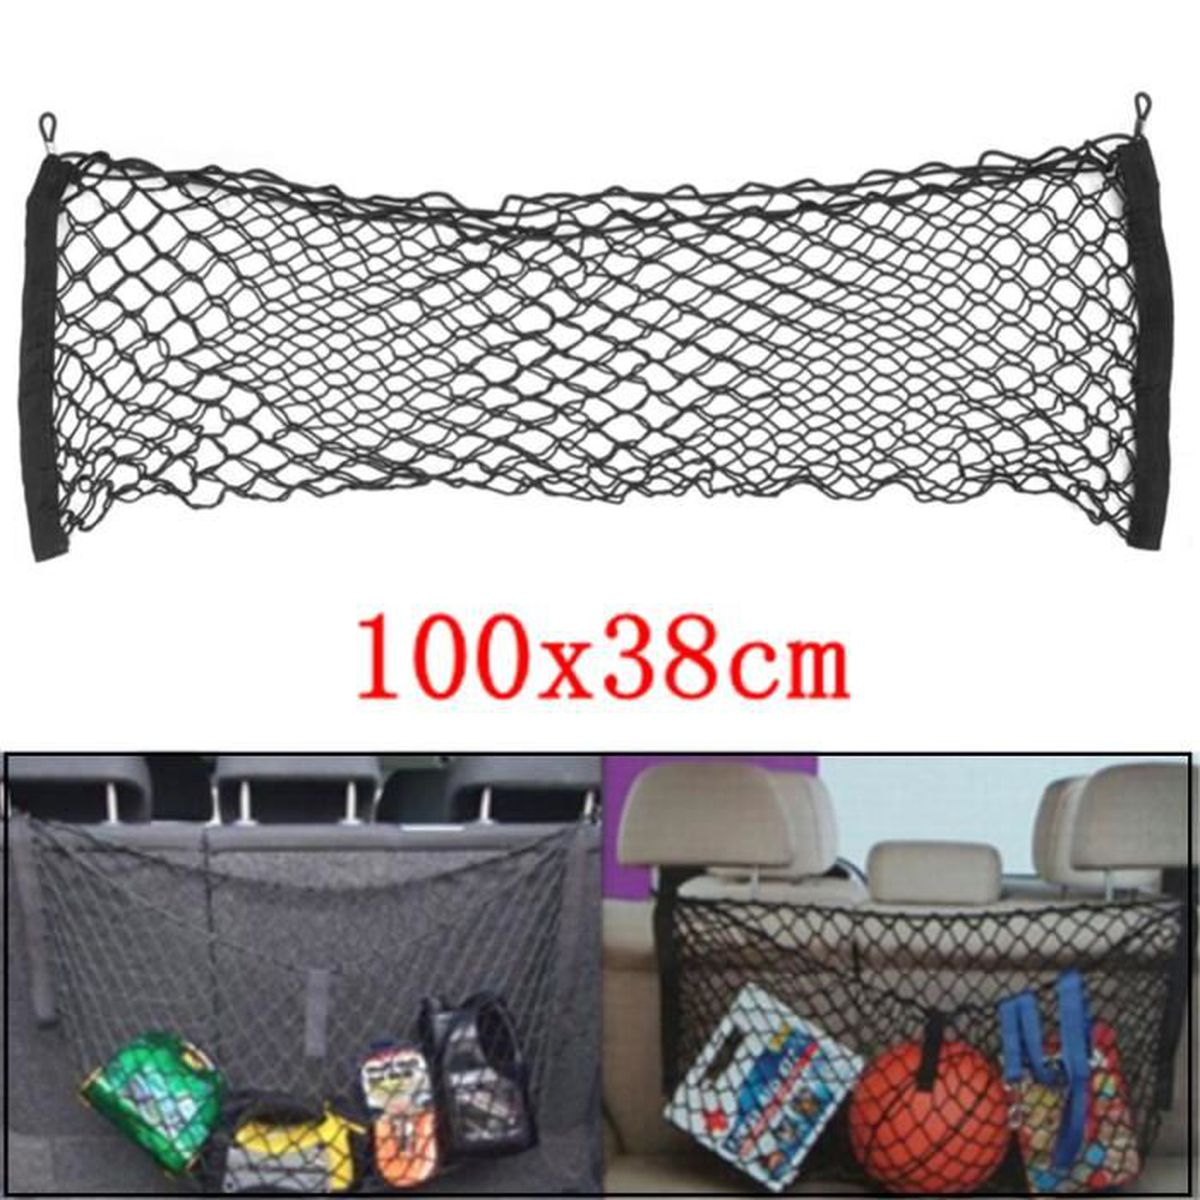 acd47a06c3d universel-filet-coffre-fixation-bagage-siege-arrie.jpg